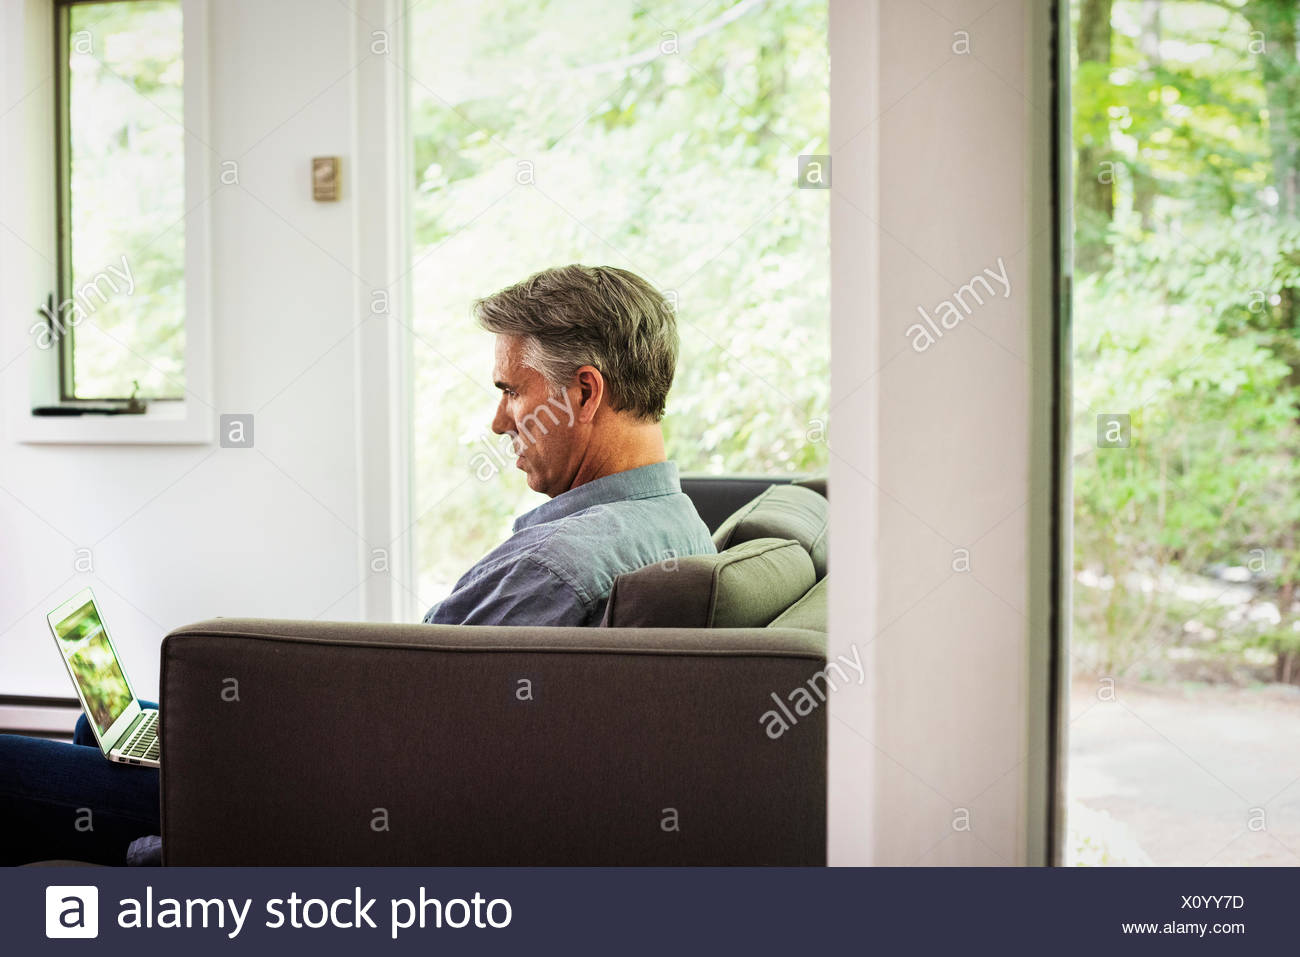 A man seated on a sofa, using a laptop. - Stock Image